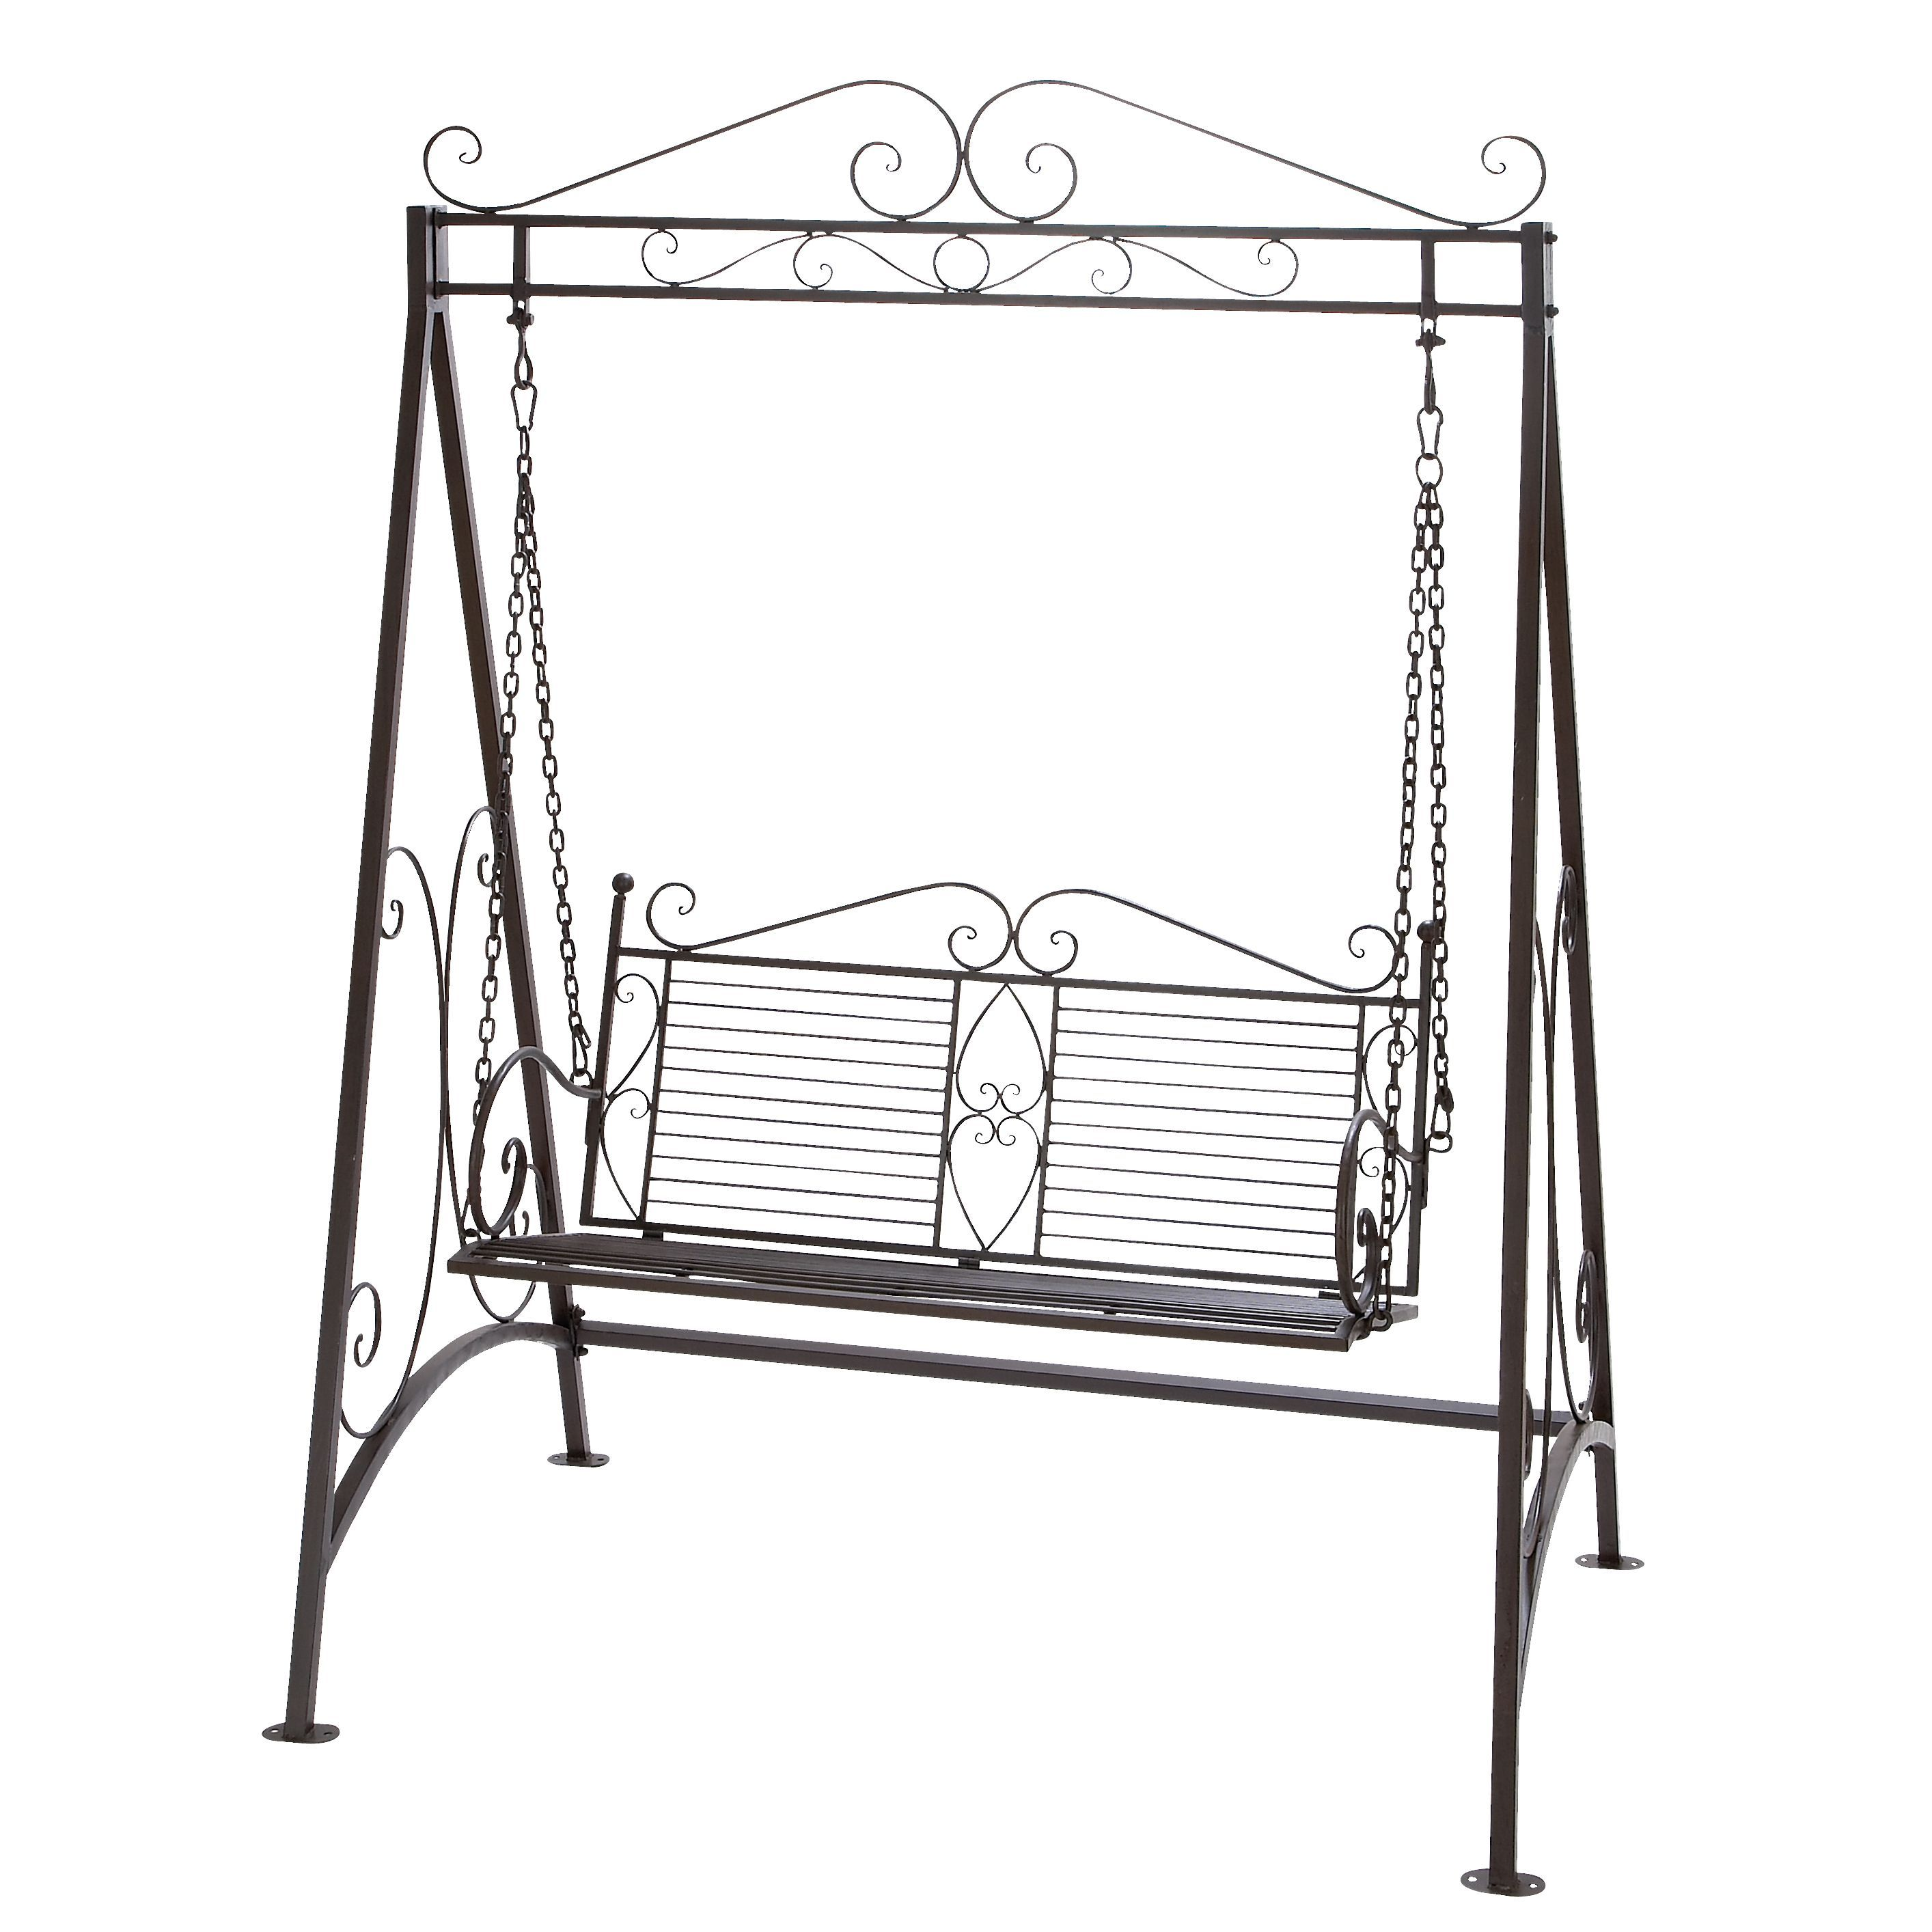 this beautiful metal garden swing adds a touch of charm to your